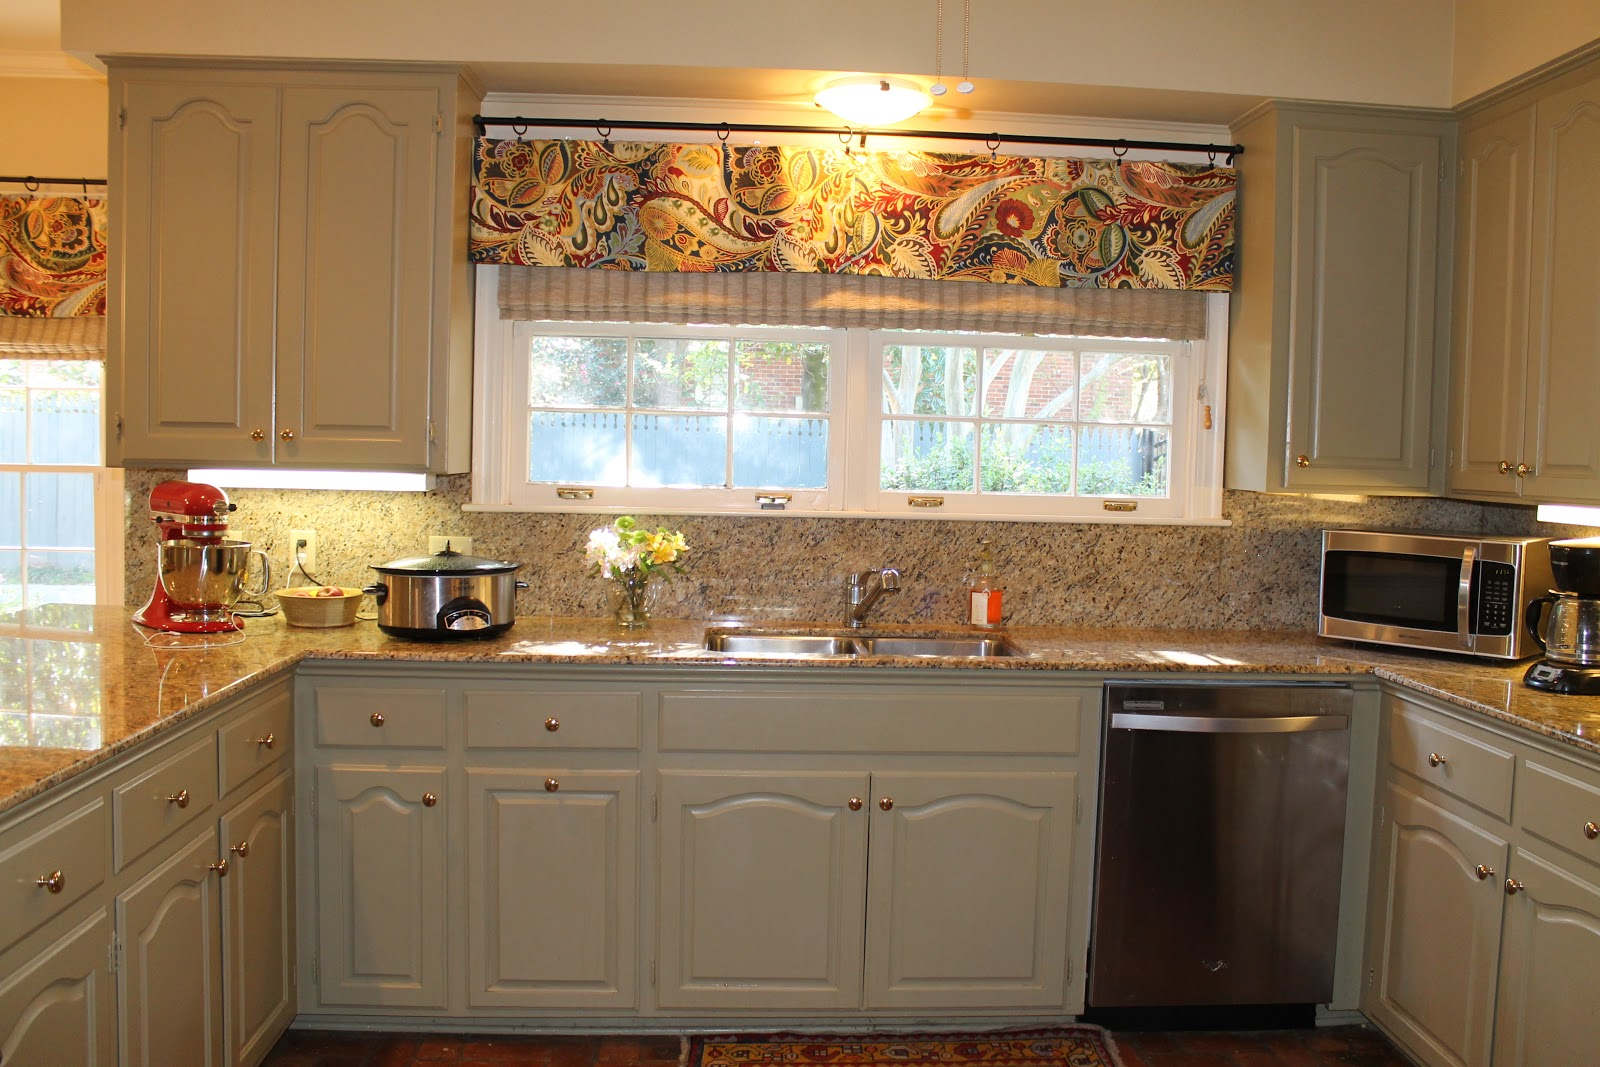 For The Window Above The Kitchen Sink I Made The Valance Shorter